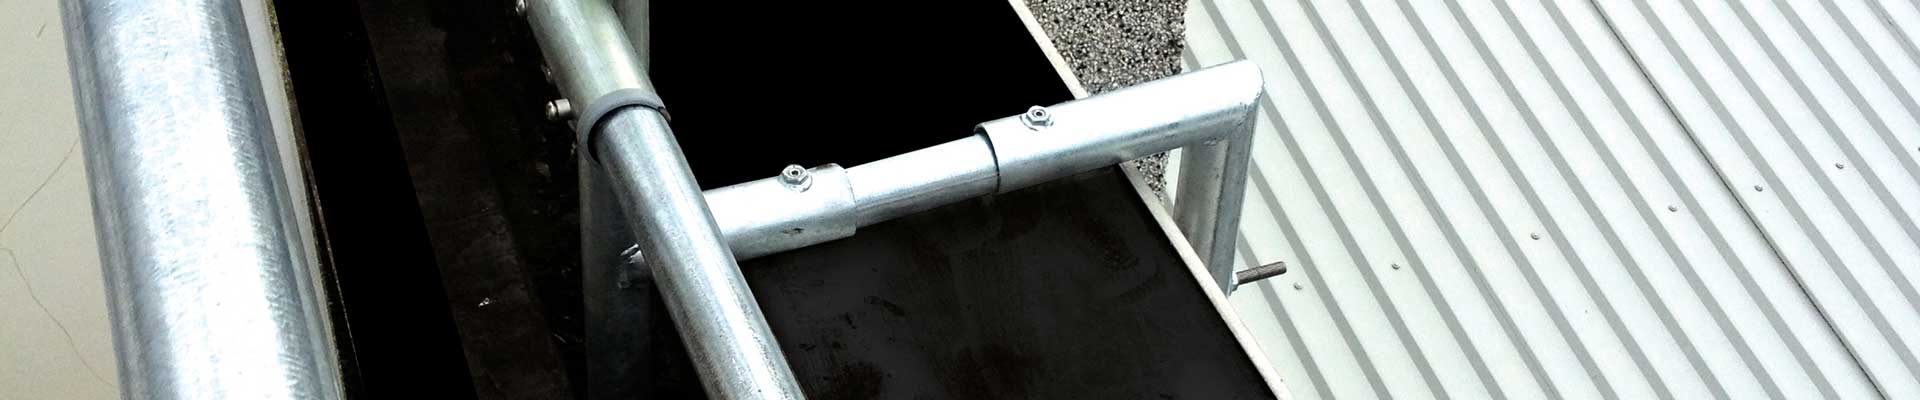 Fixed Parapet Handrail: Clamp, Top Fix, Side Fix & Rivet Fix